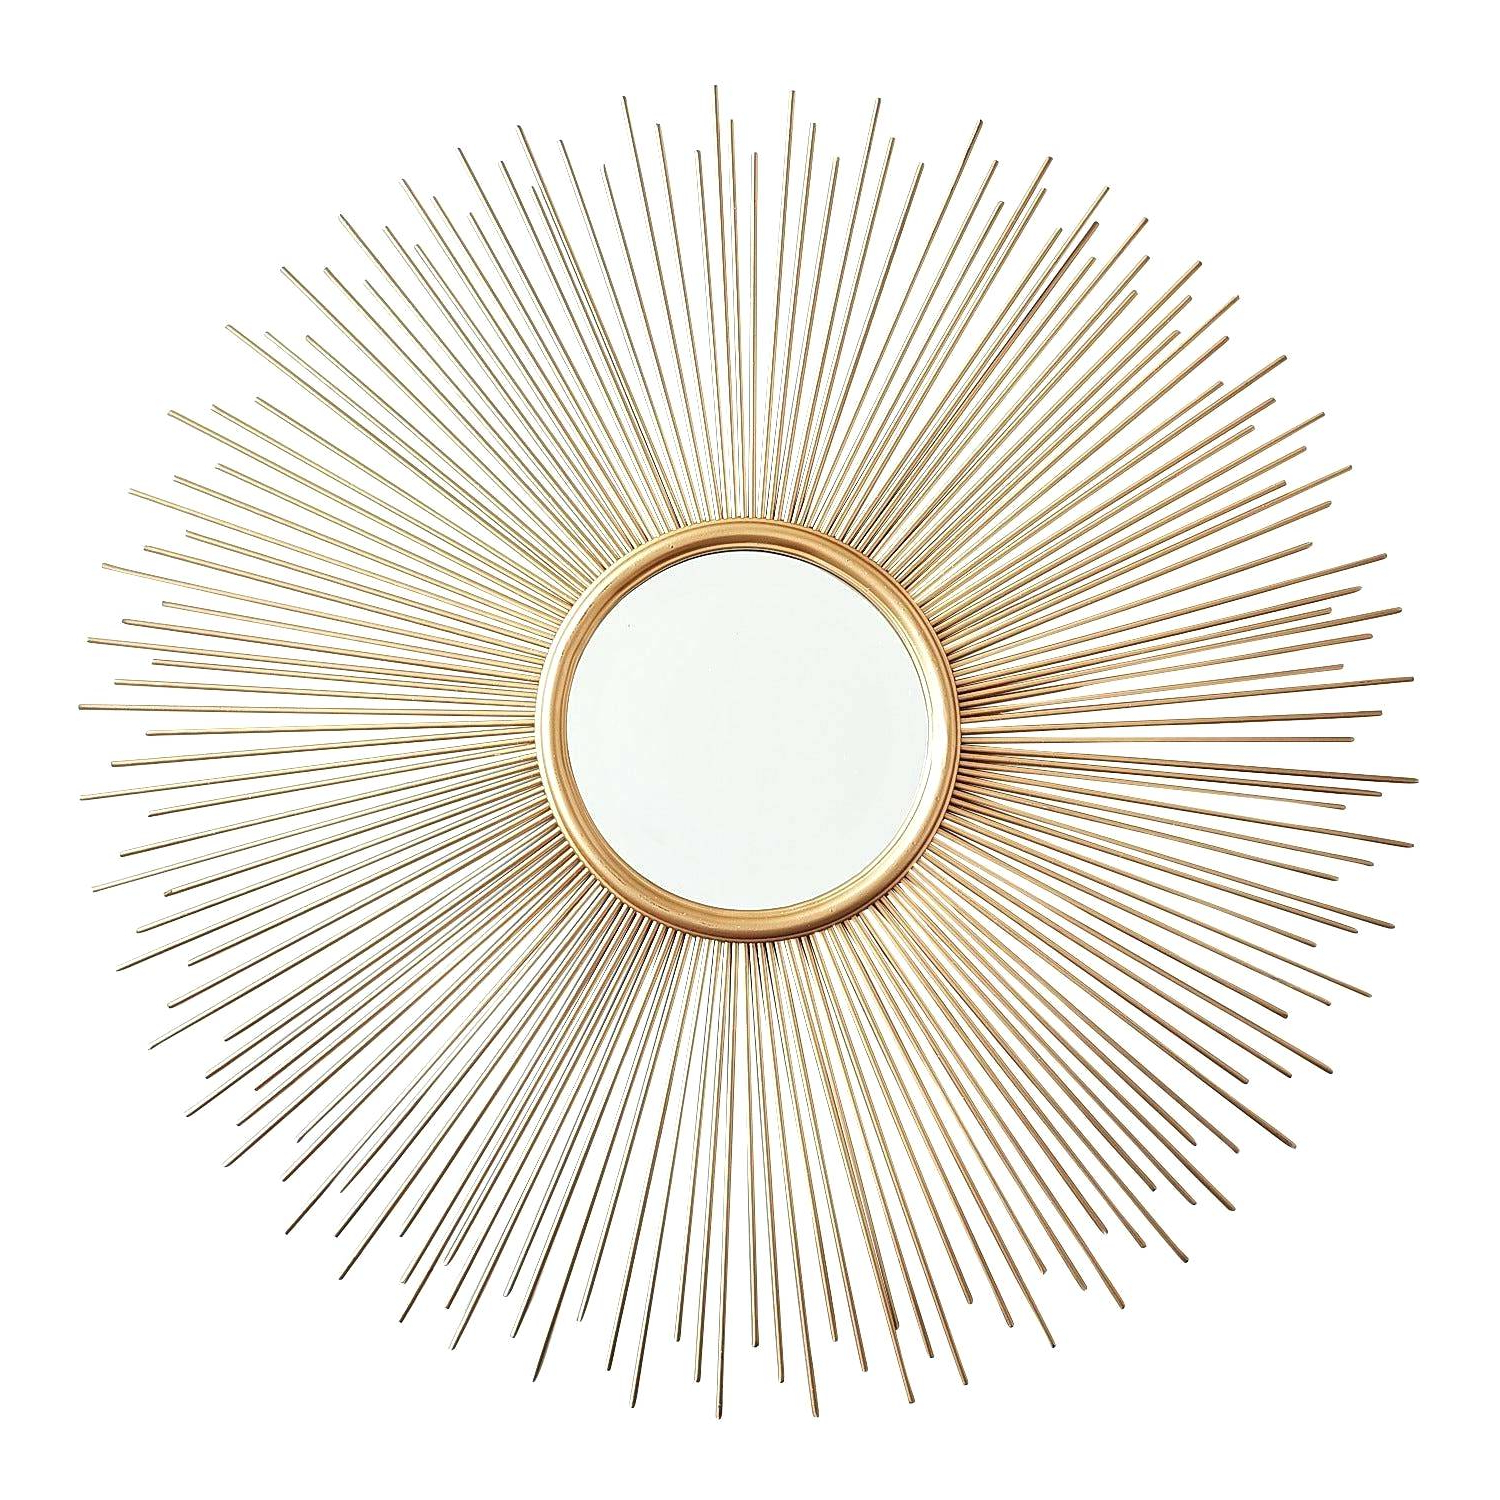 Estrela Modern Sunburst Metal Wall Mirrors With Best And Newest Metal Sunburst Mirror Save This Item To Sunburst Metal Mirror Wall (View 10 of 20)